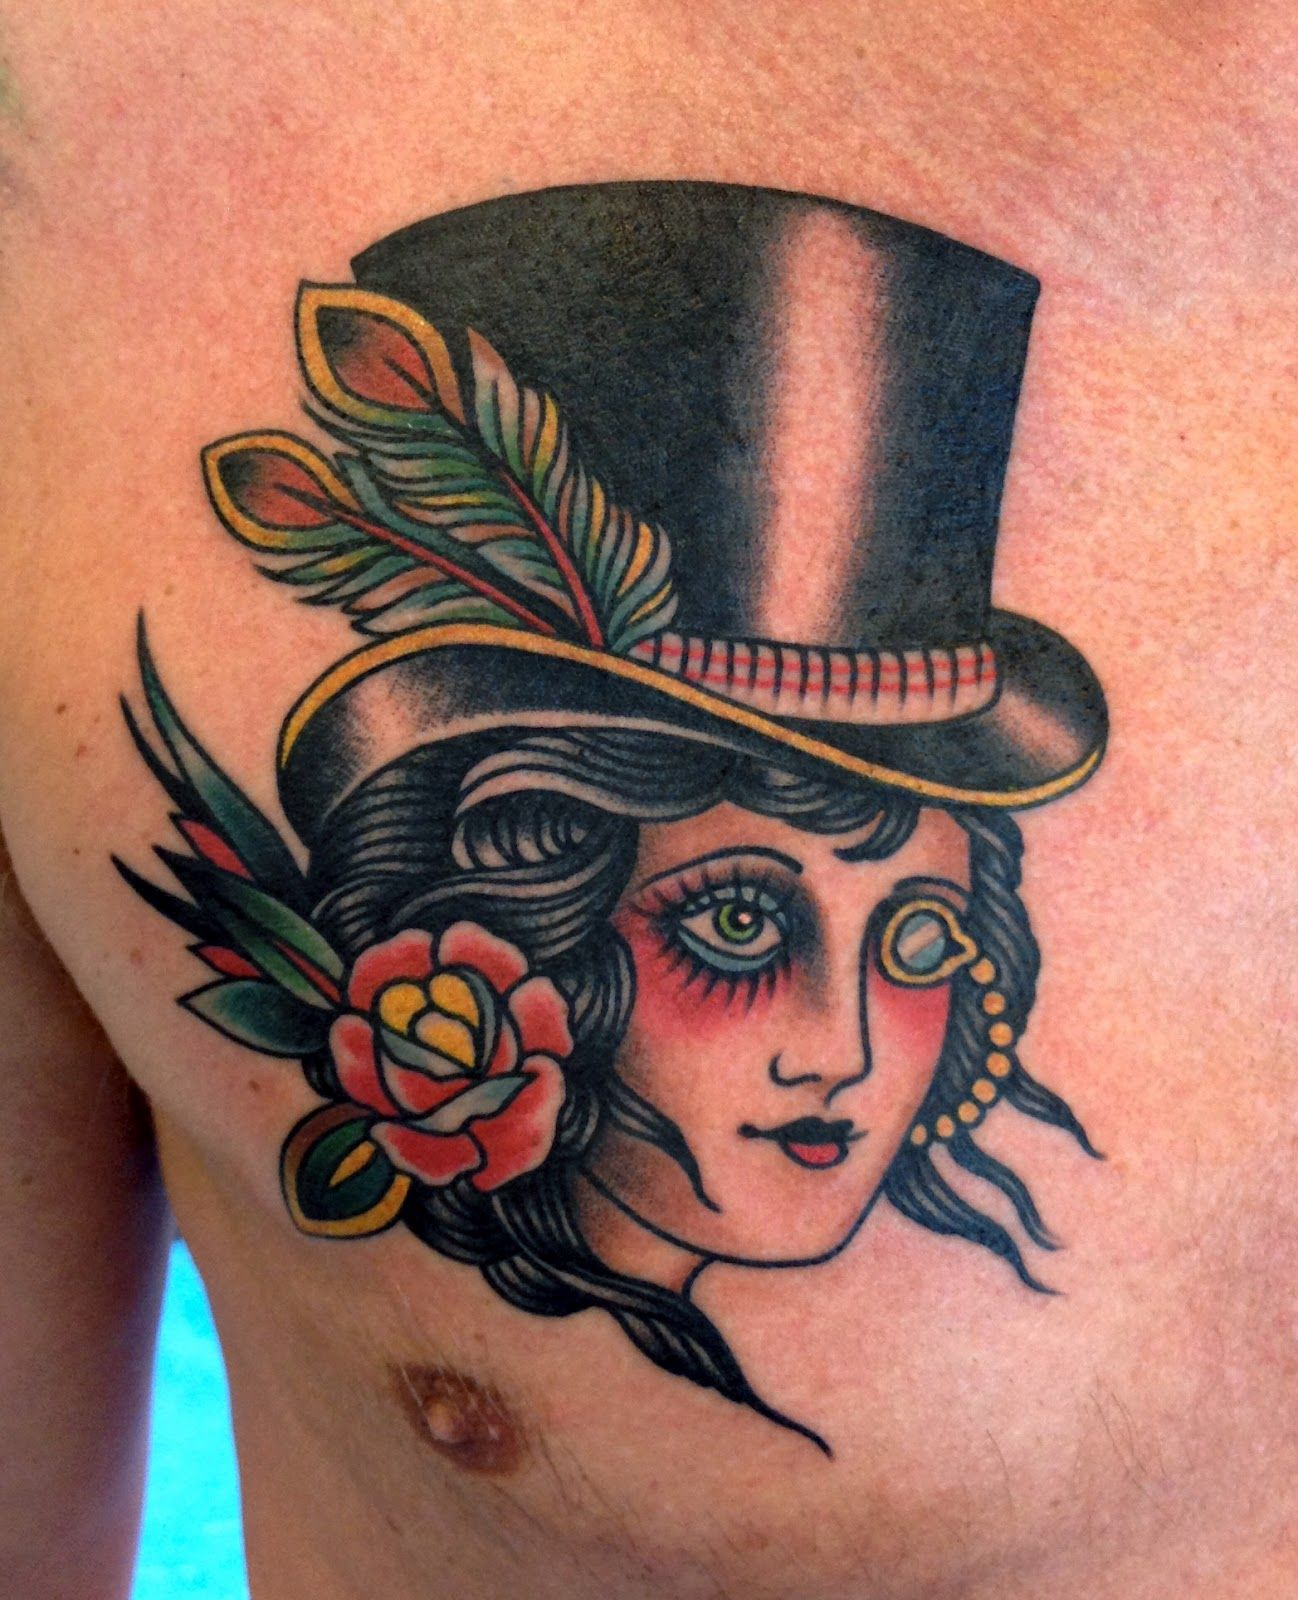 Tattoo School Traditional Nautic Ink - Doll Face Hat Pinup Paul Dobleman